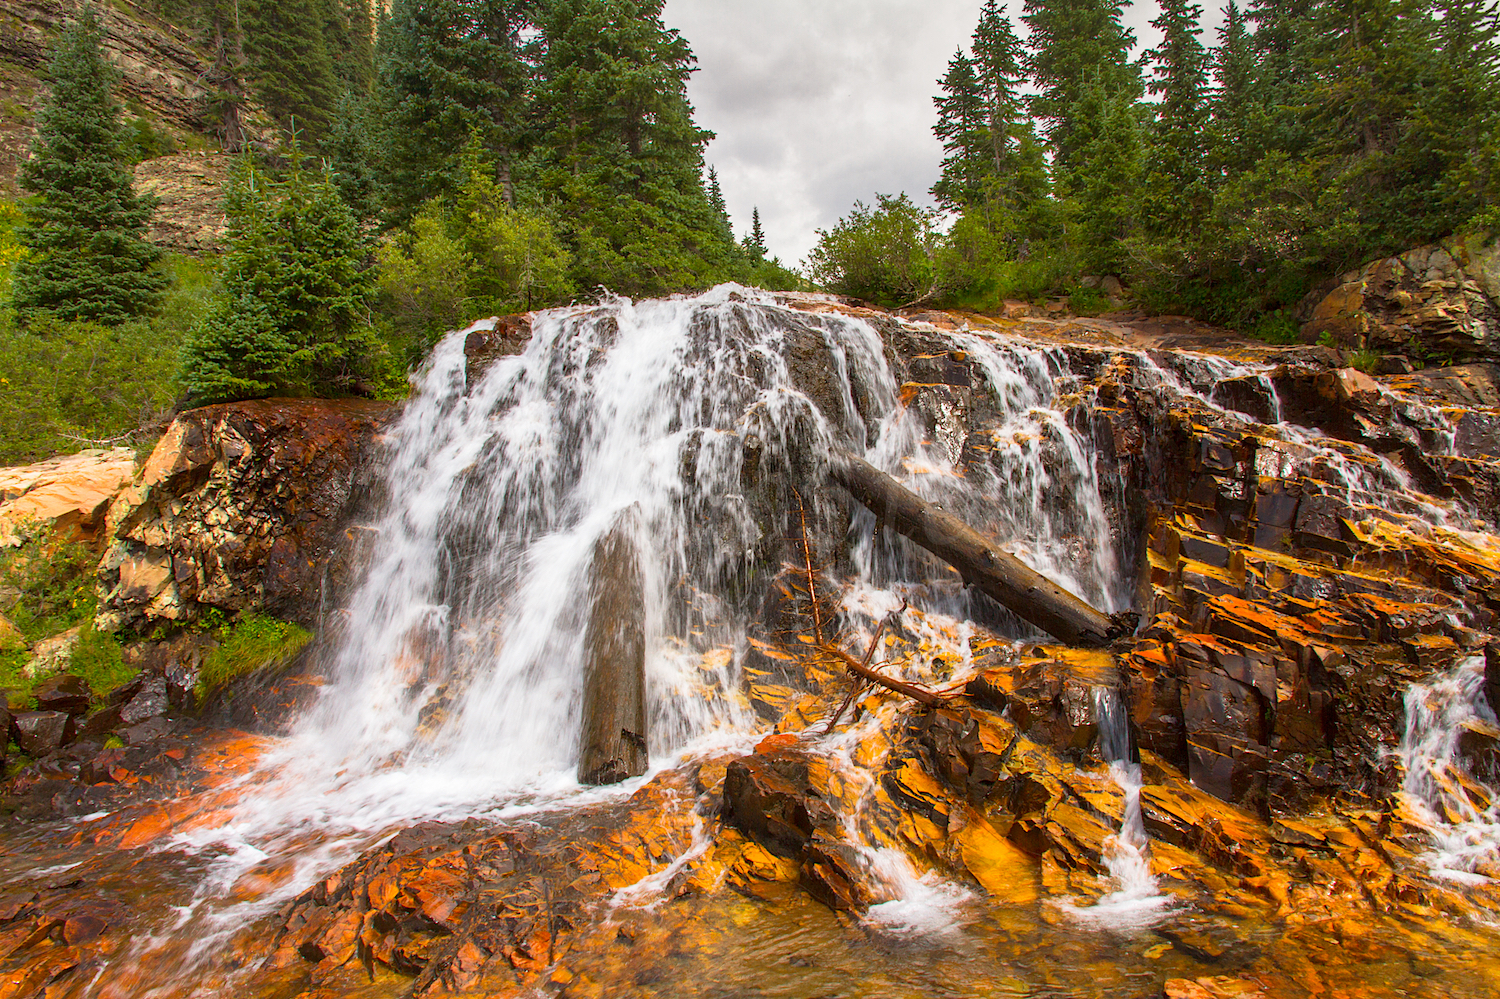 CASCADE DIVIDE WATERFALL, IMAGE # 5174